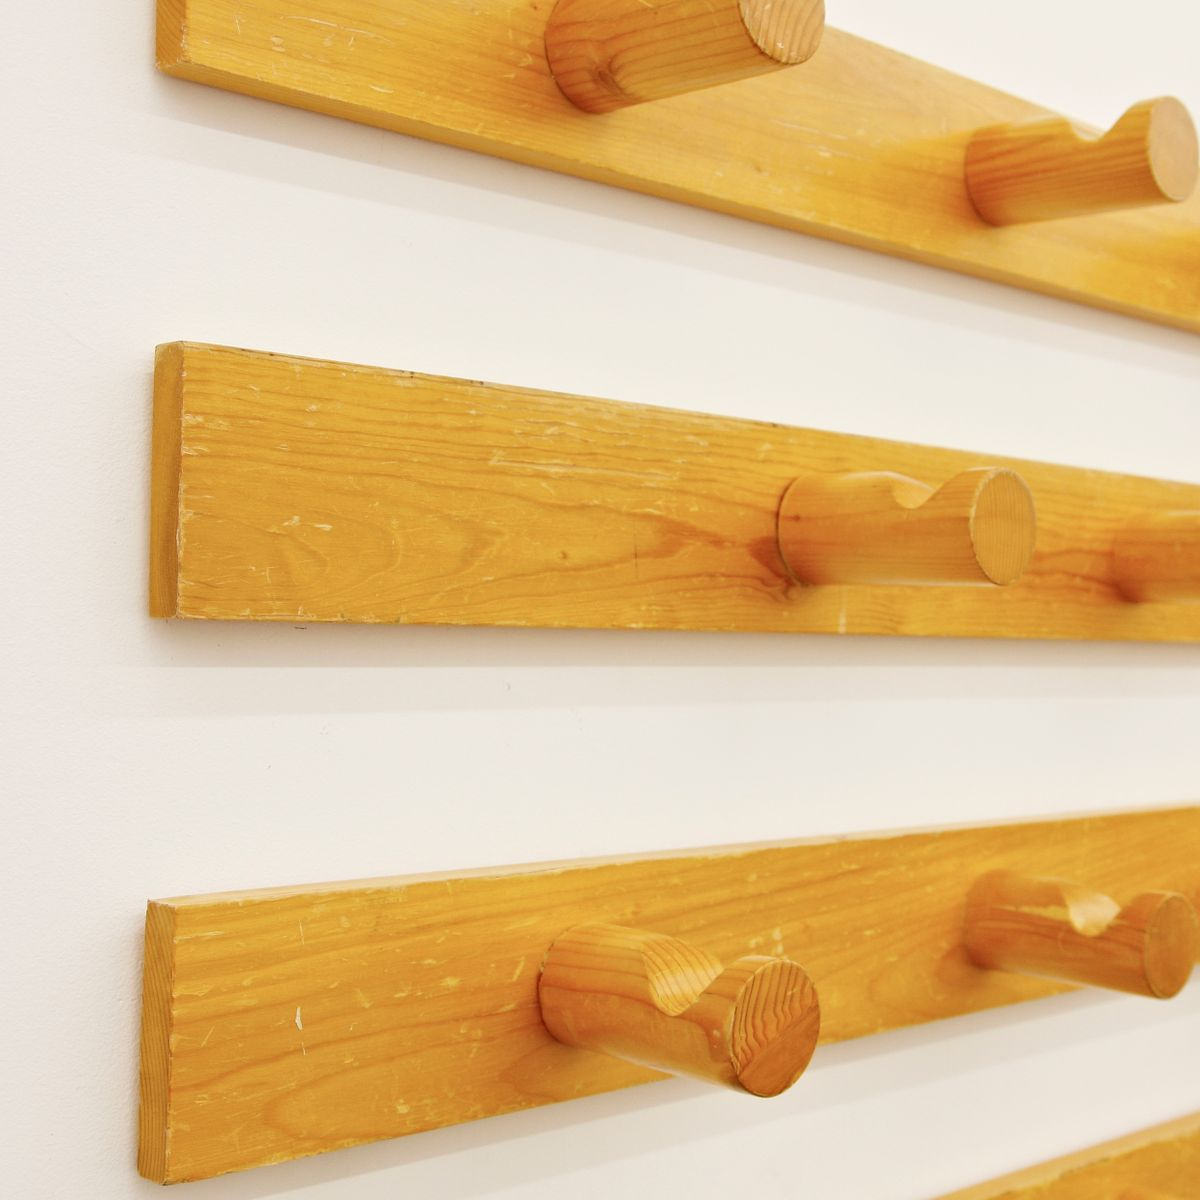 Marvelous photograph of French Pine Wood Coat Rack by Charlotte Perriand for Les Arcs Set of  with #8F4920 color and 1200x1200 pixels